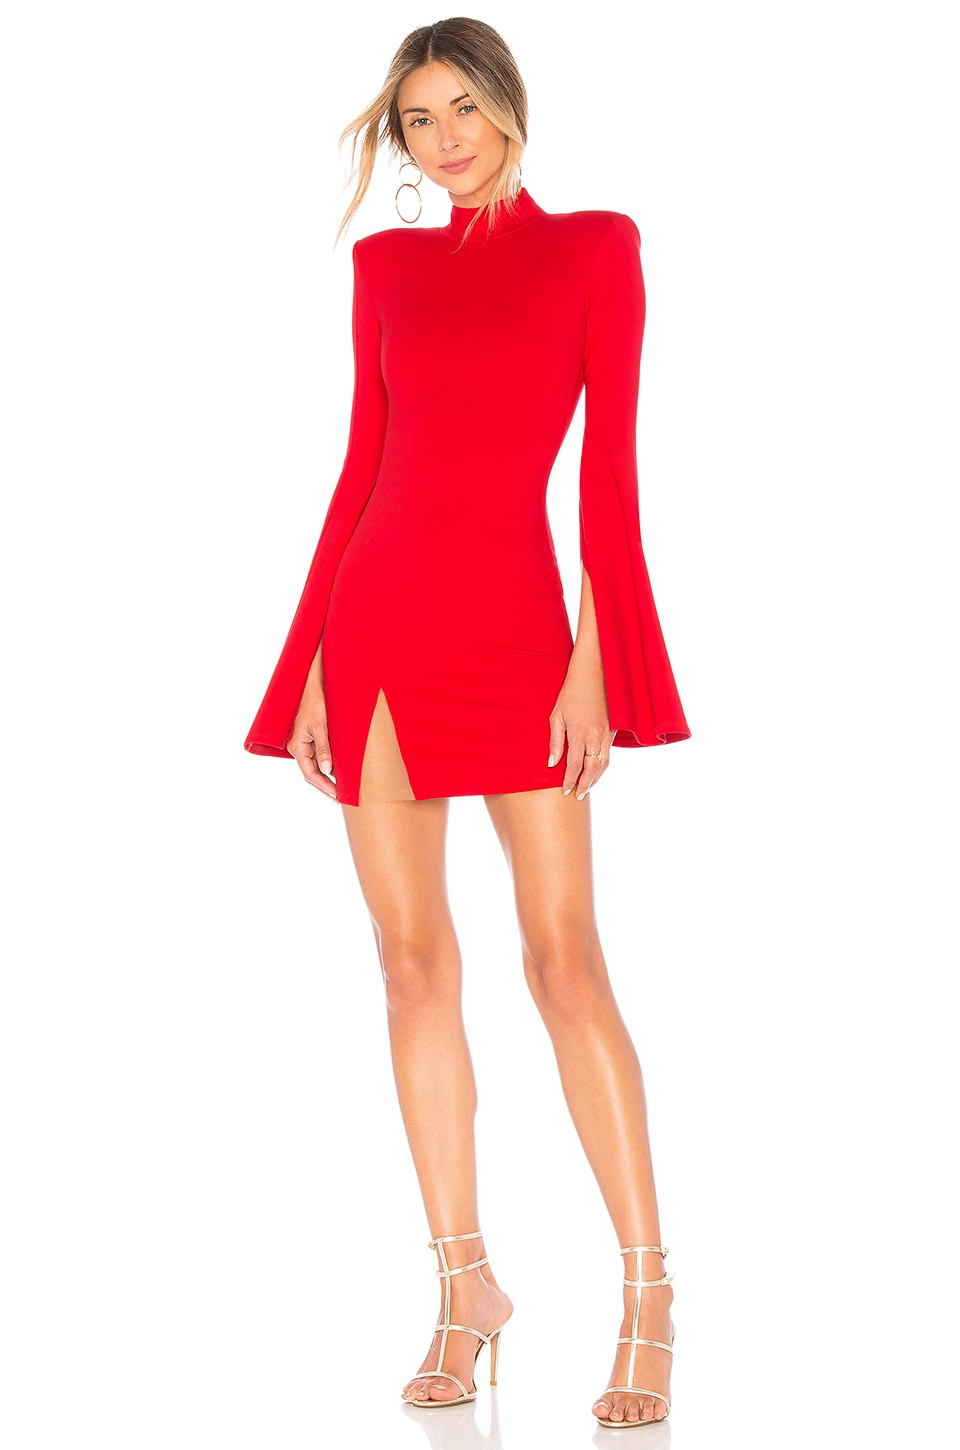 Michael Costello x REVOLVE Mr. Gibson Mini Dress in Red